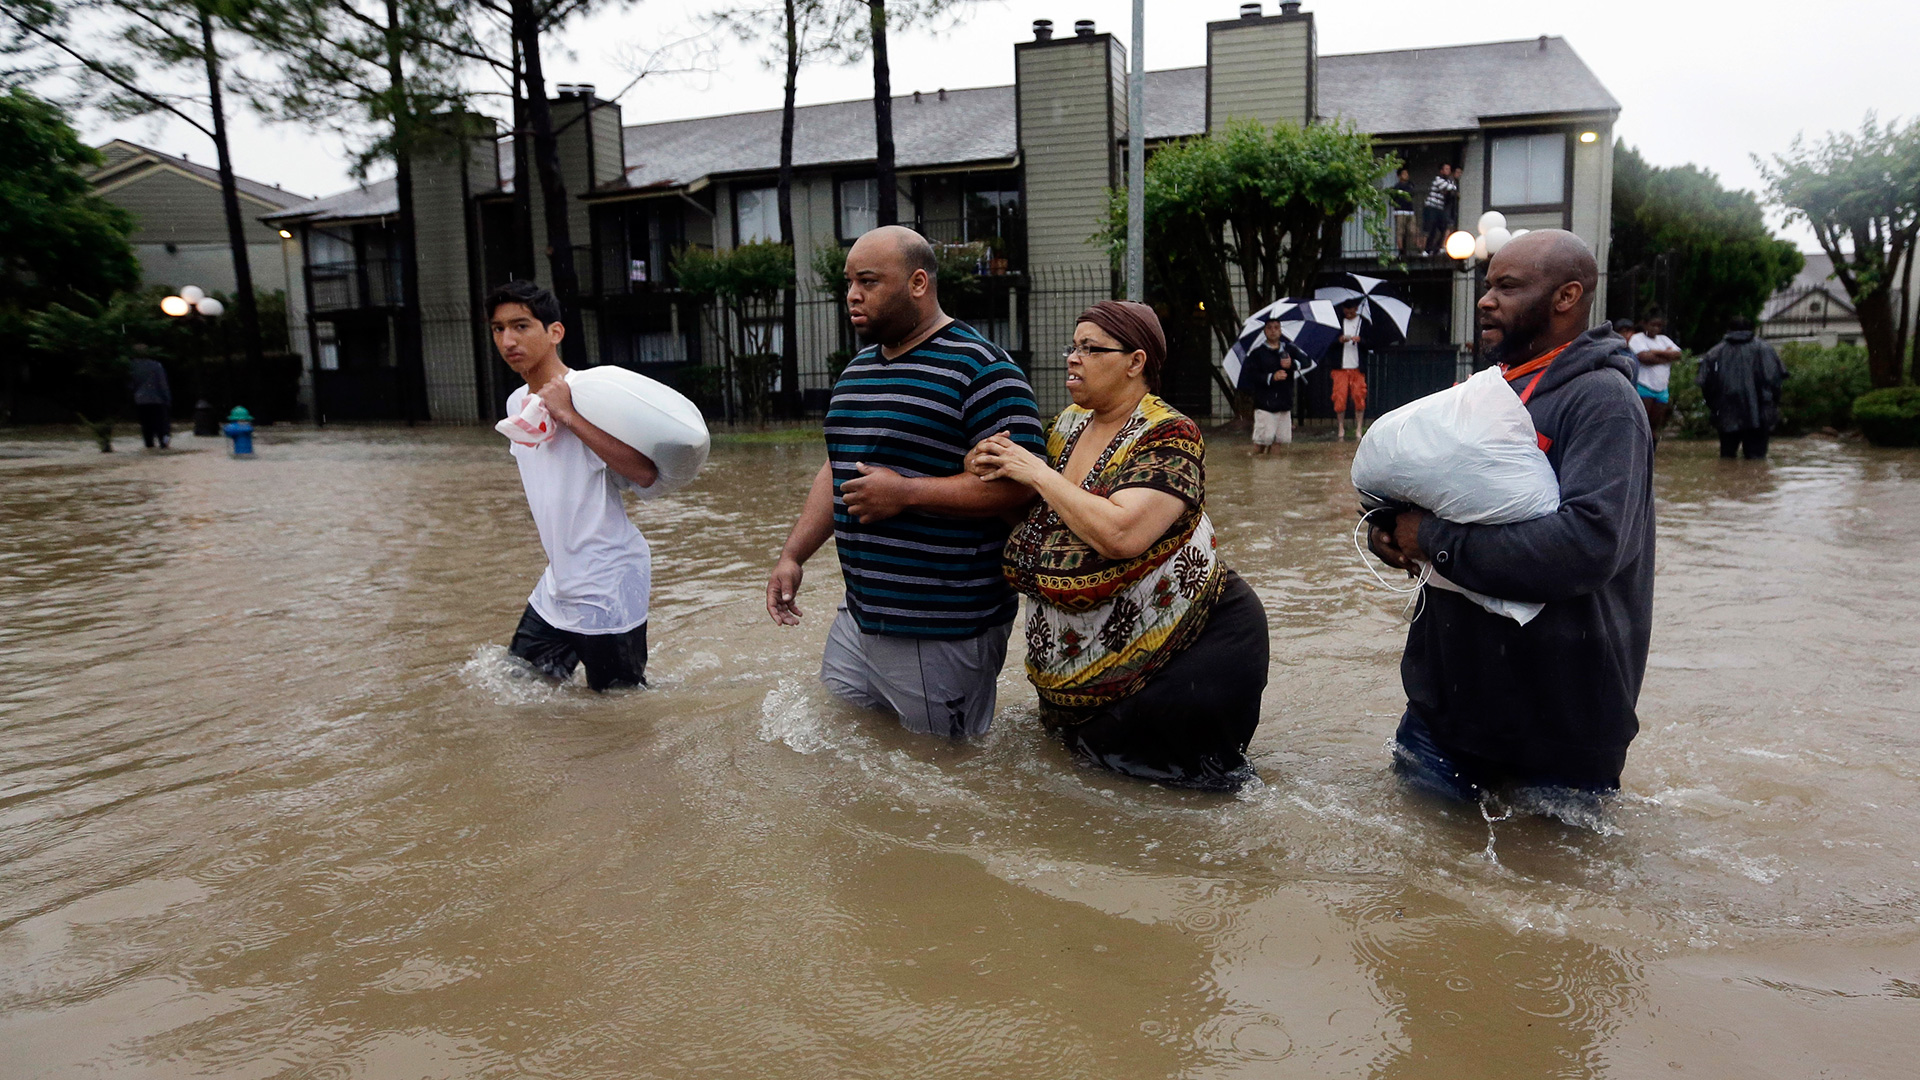 Inundaciones Y Lluvias Obligan A Evacuar En Houston Texas